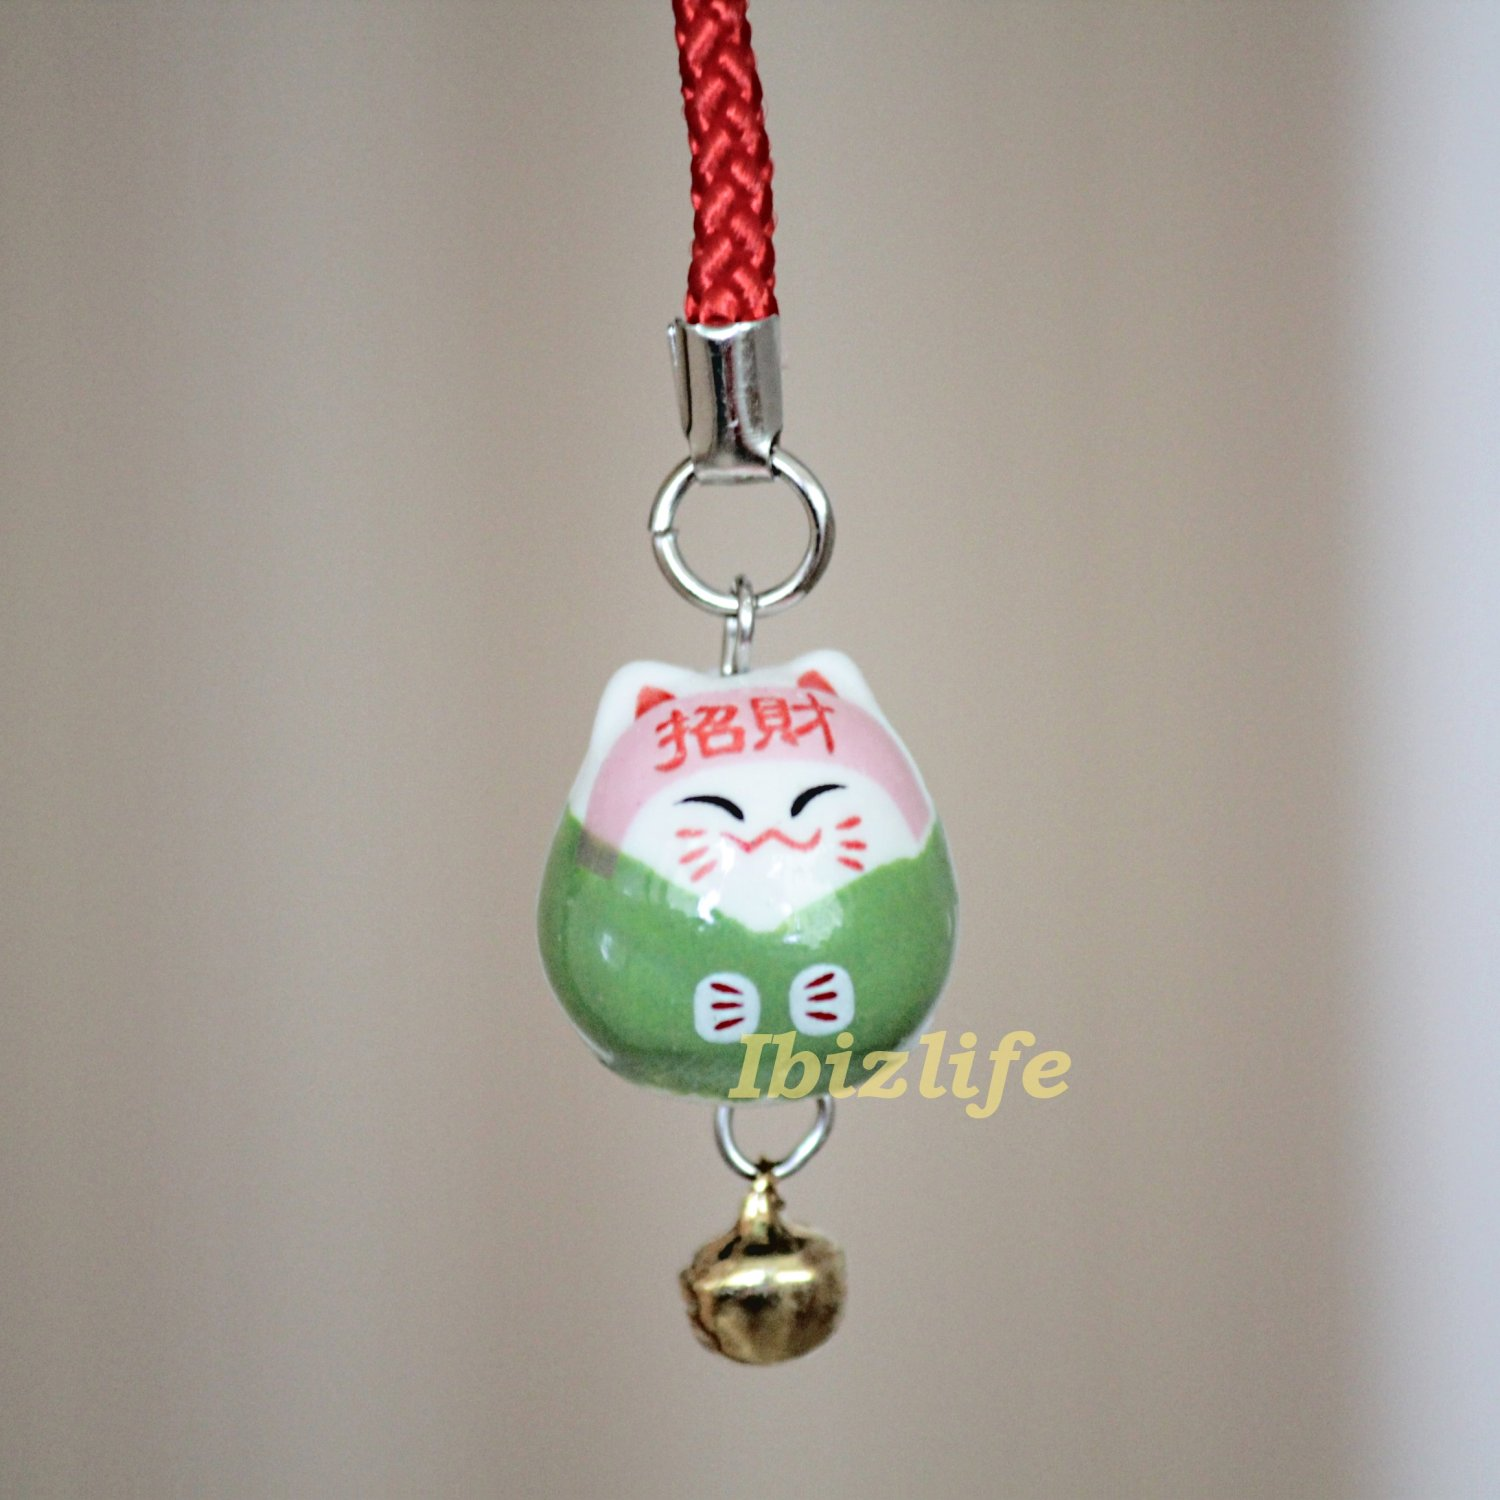 Blessing Lucky BELL CHARM- (Maneki Neko) with Chinese Blessing words WEALTH (bbc03)